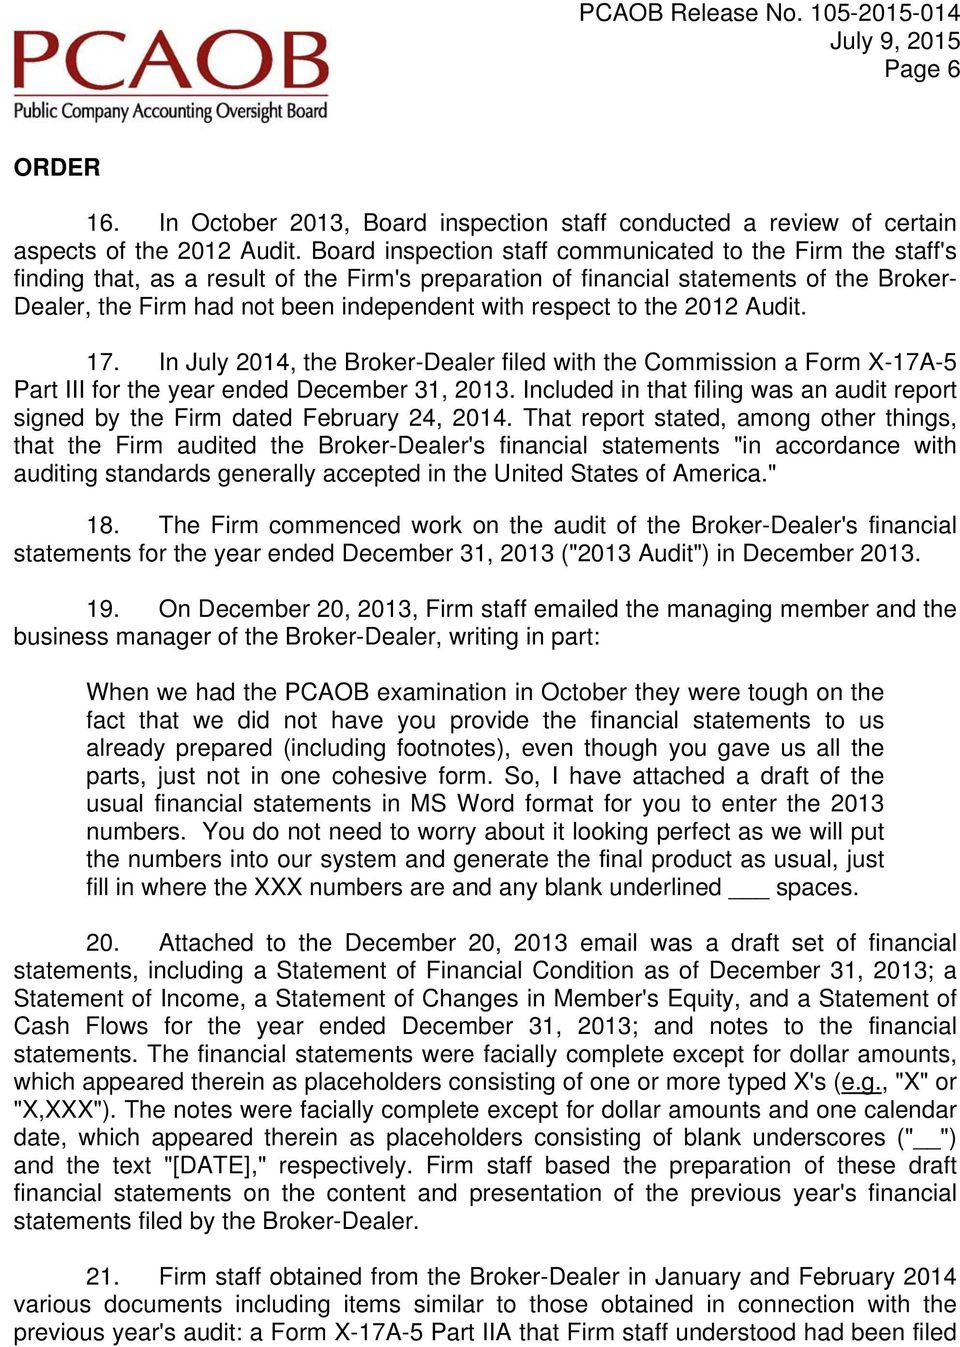 respect to the 2012 Audit. 17. In July 2014, the Broker-Dealer filed with the Commission a Form X-17A-5 Part III for the year ended December 31, 2013.